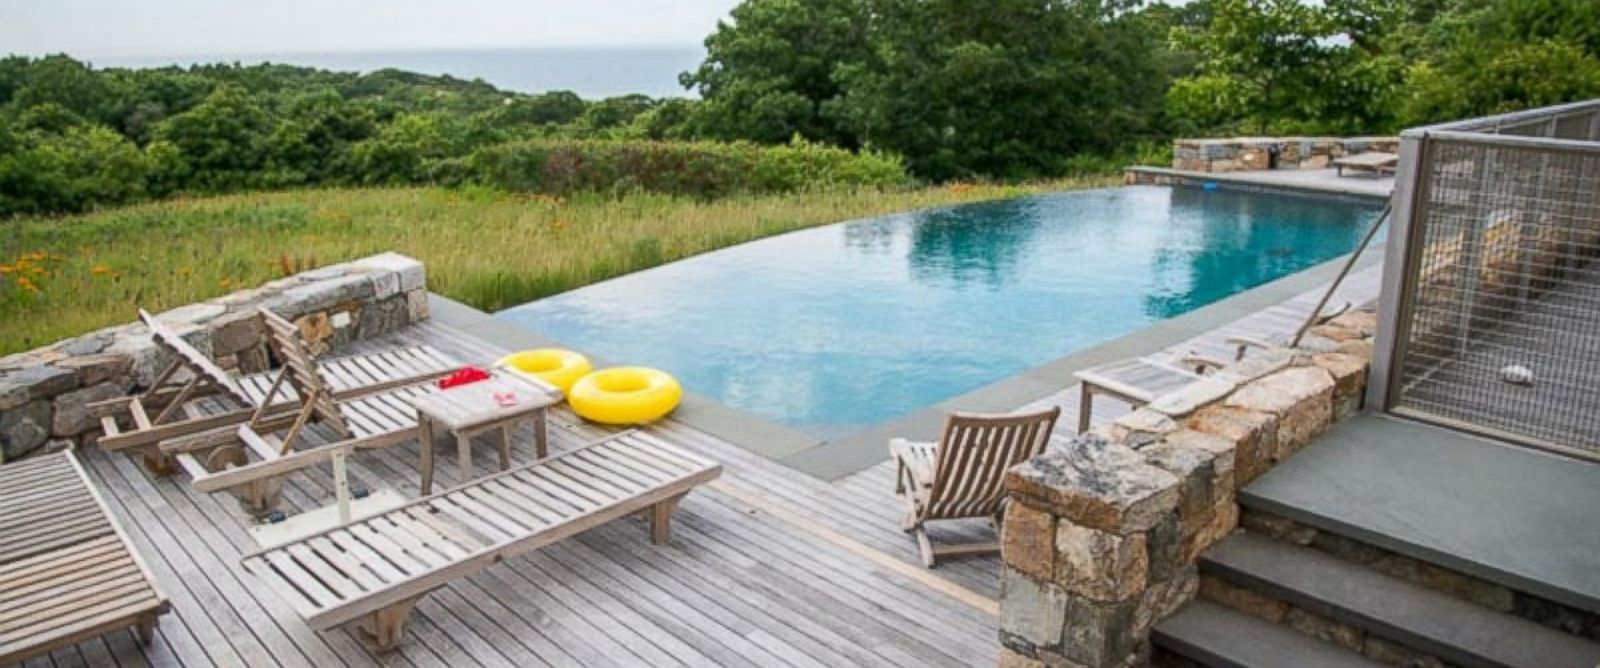 PHOTO: A backyard deck and pool are seen in the vacation home where President Obama and his family are vacationing in Chilmark, Massachusetts.